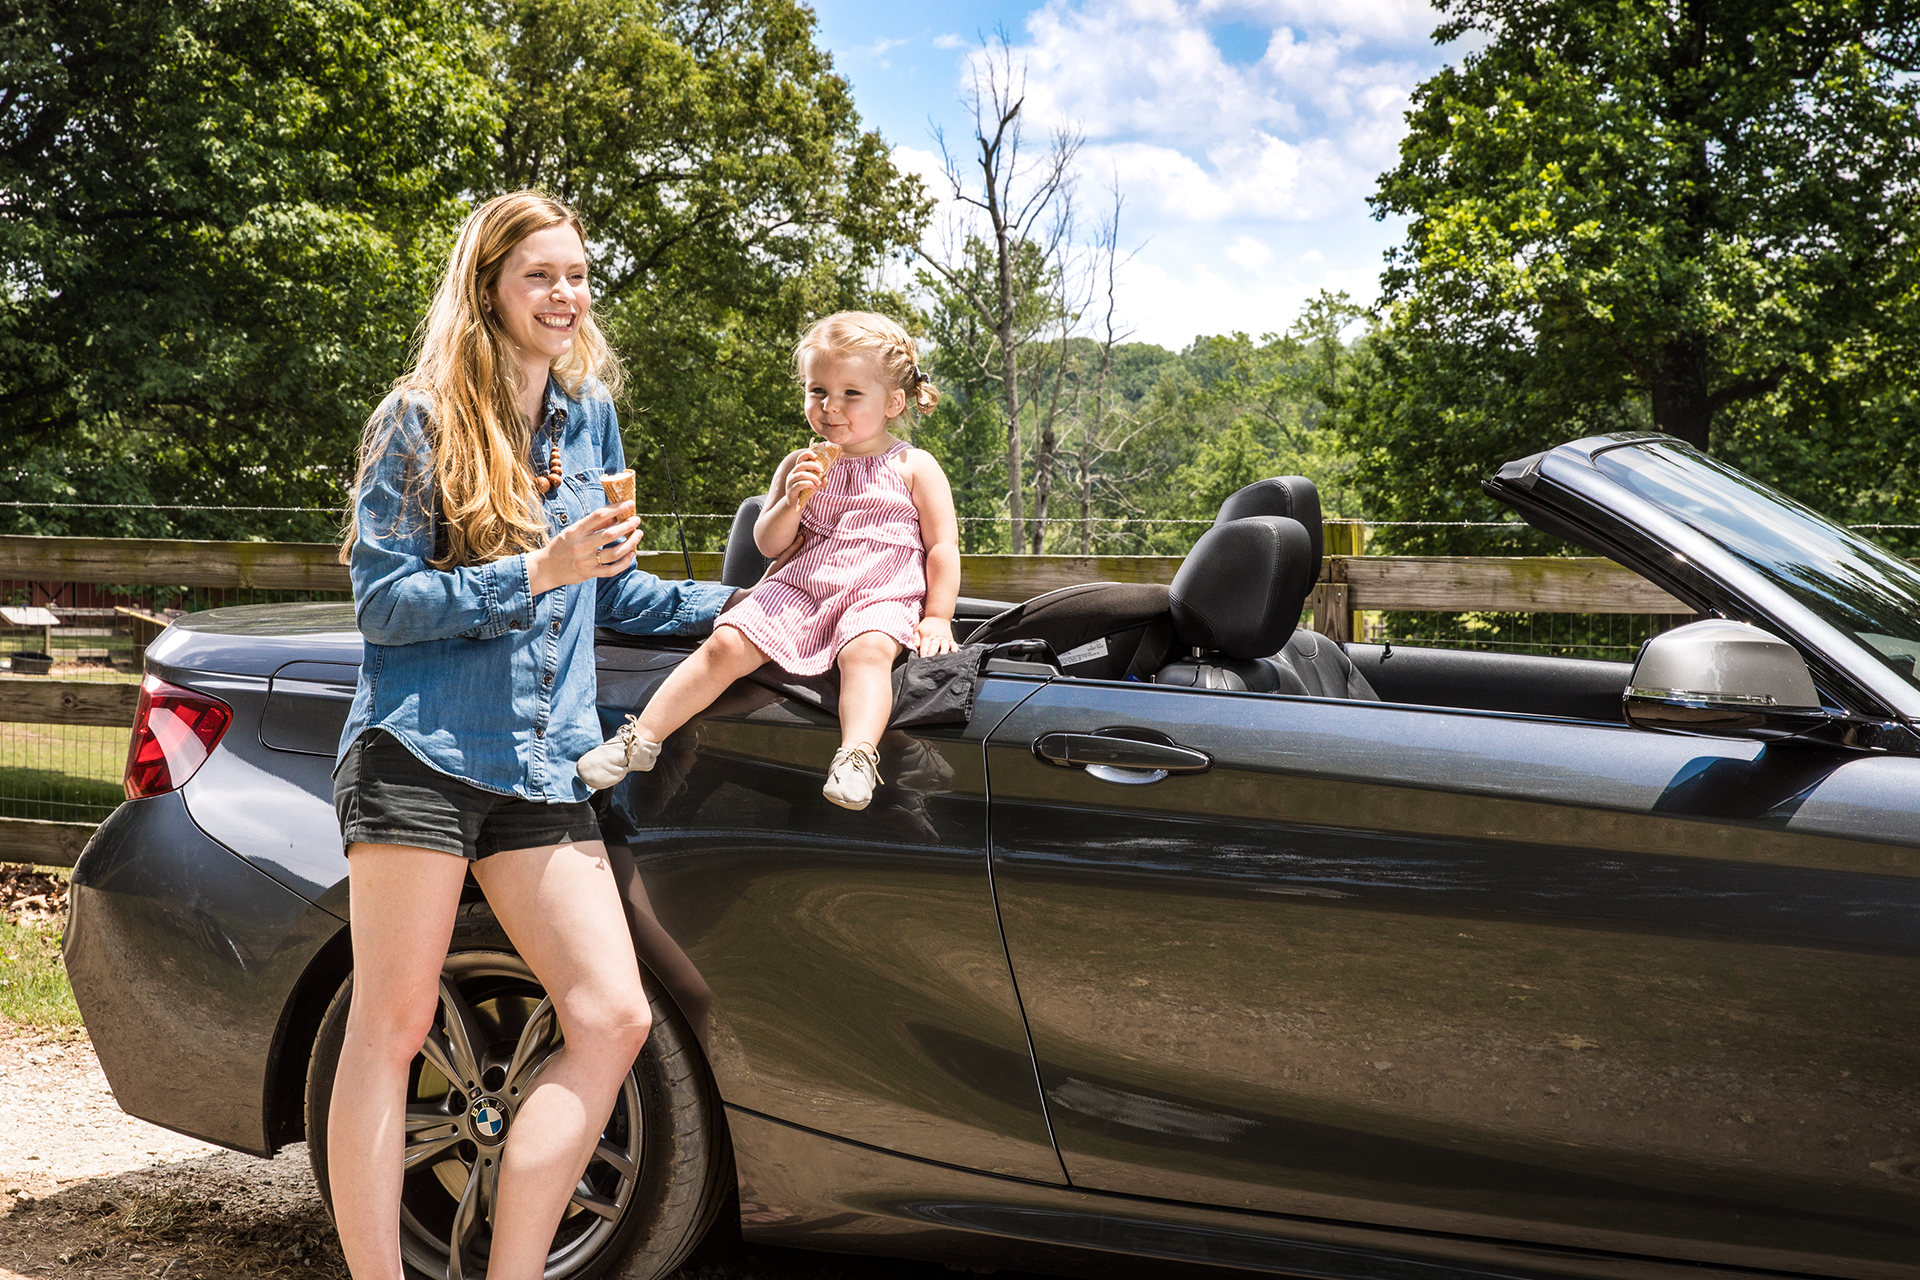 Mom and daughter eat icecream beside their subscription car